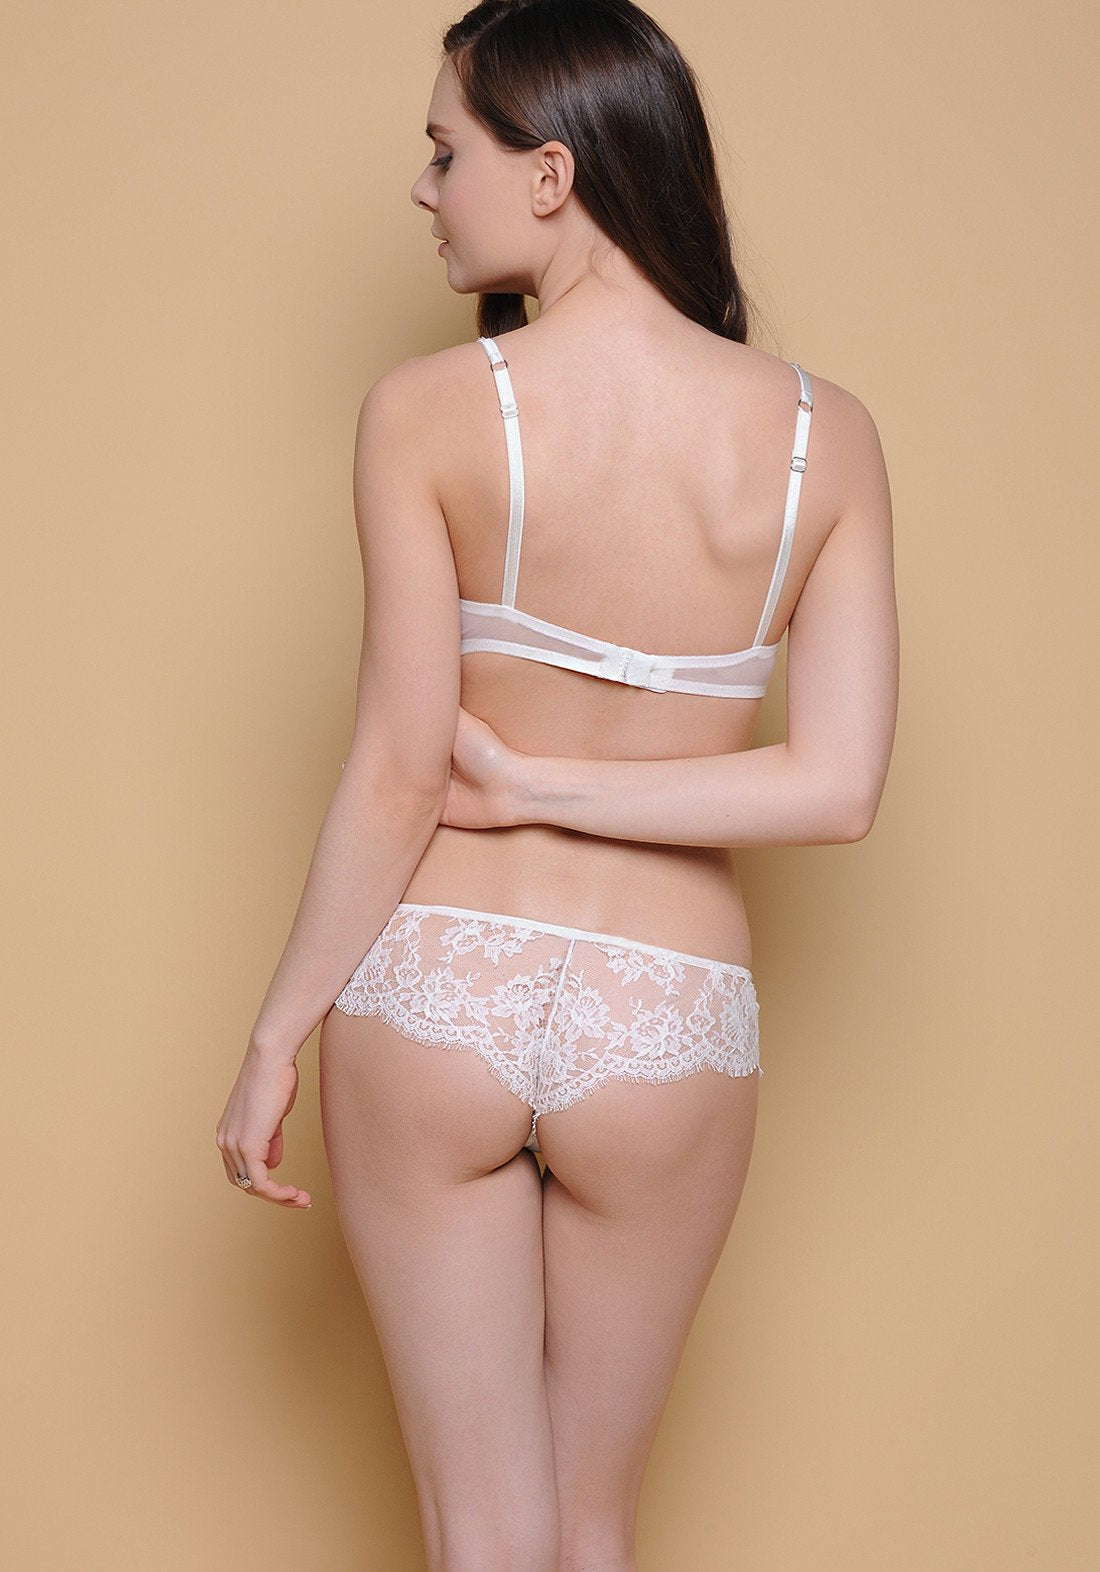 Allure d'Amour Push-Up Bra in Ivory